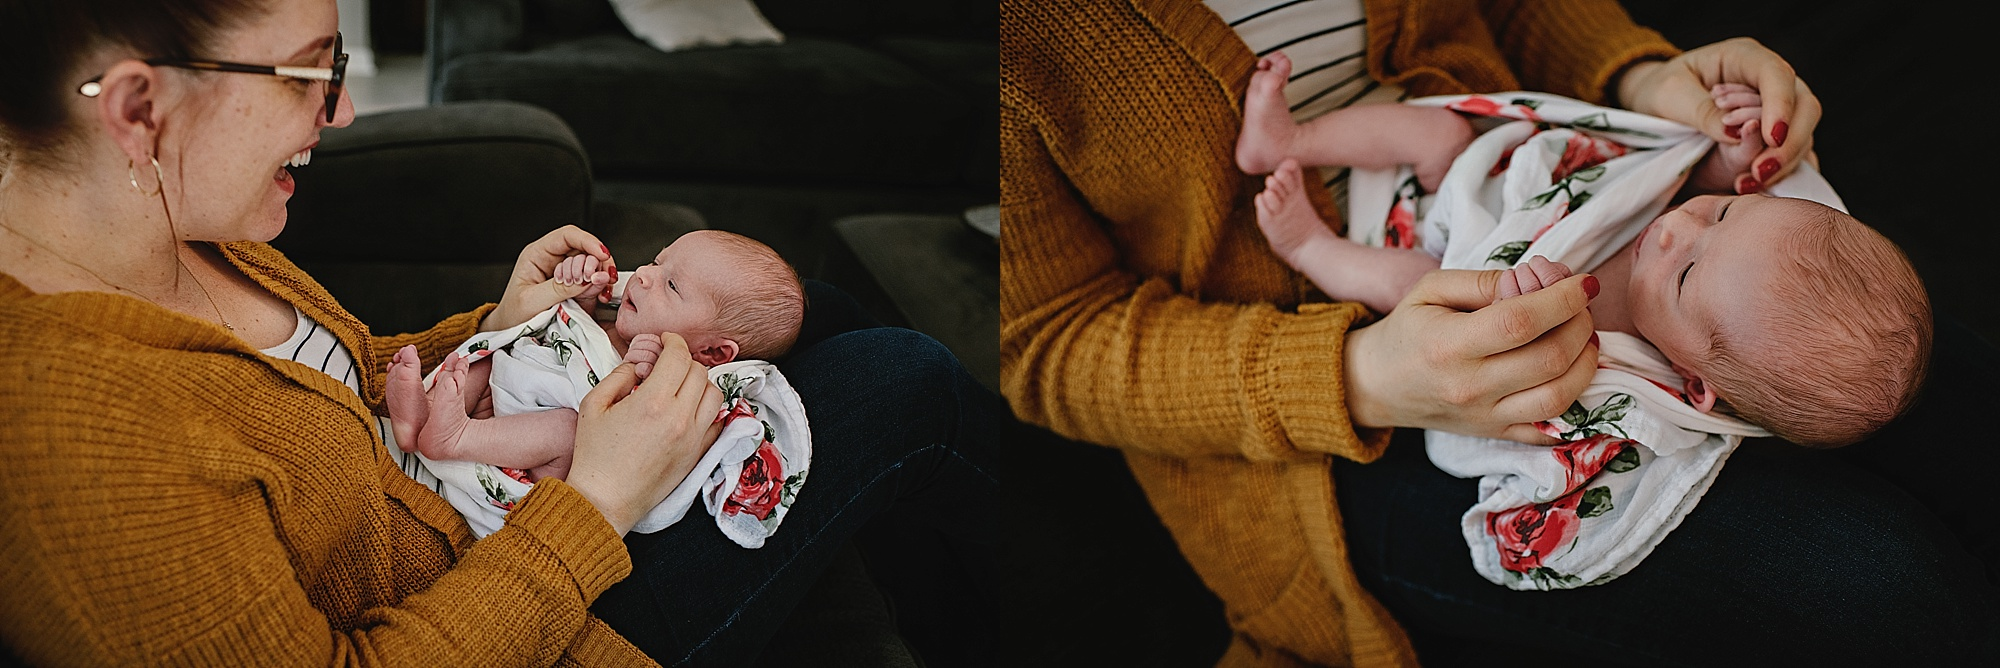 lauren-grayson-photography-cleveland-ohio-photographer-newborn-session-in-home-lifestyle-josephine_0617.jpg